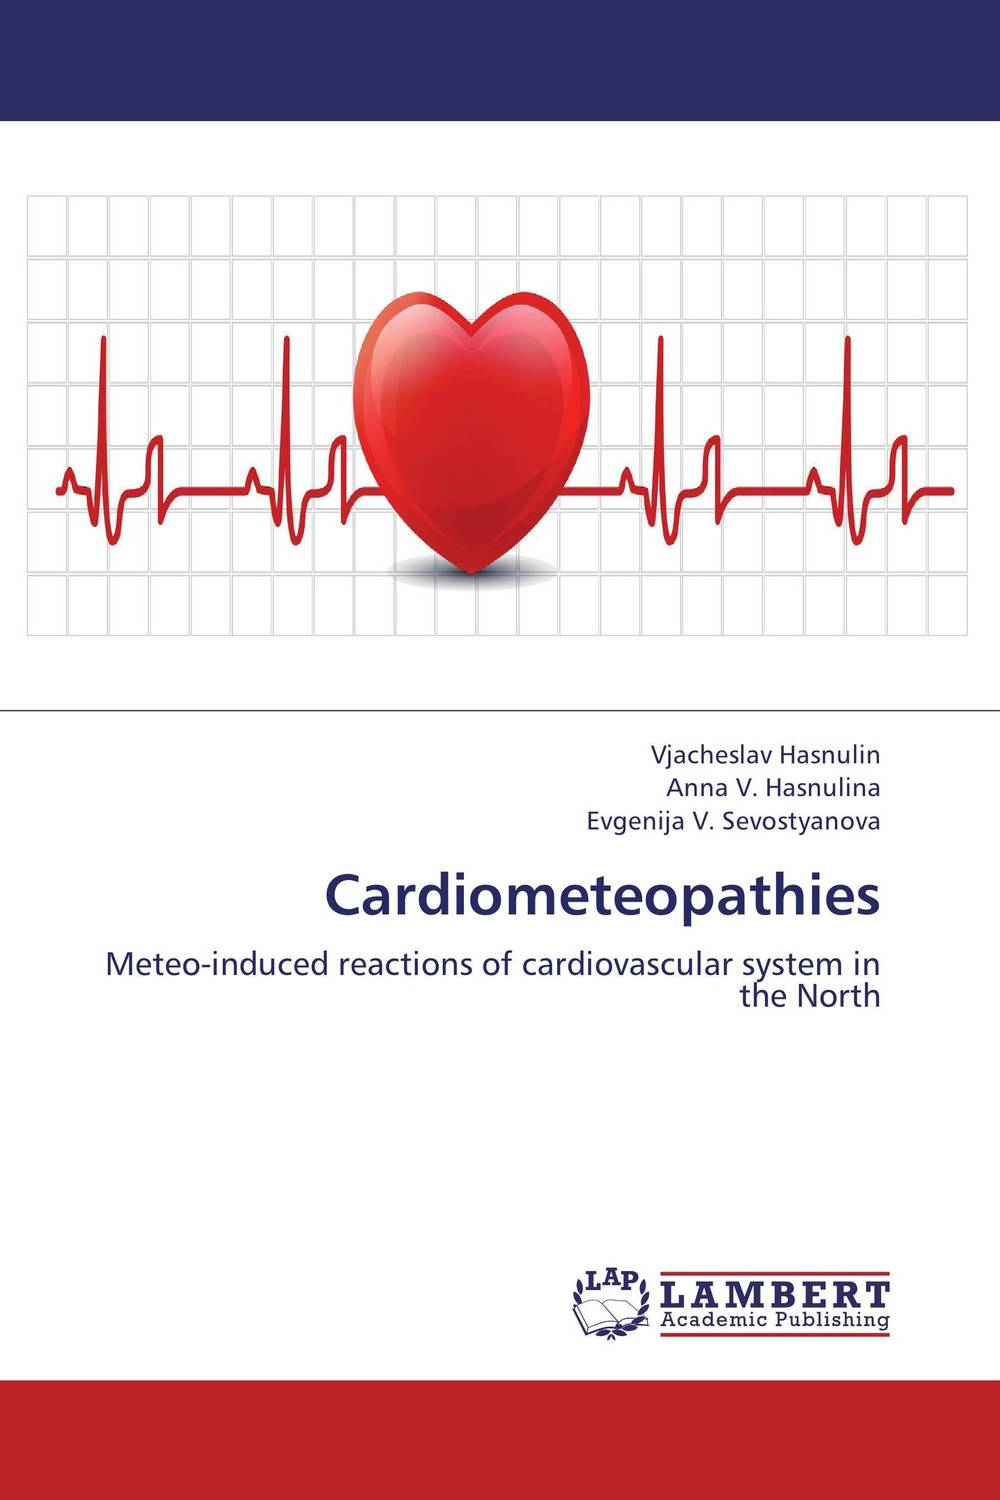 Cardiometeopathies belousov a security features of banknotes and other documents methods of authentication manual денежные билеты бланки ценных бумаг и документов